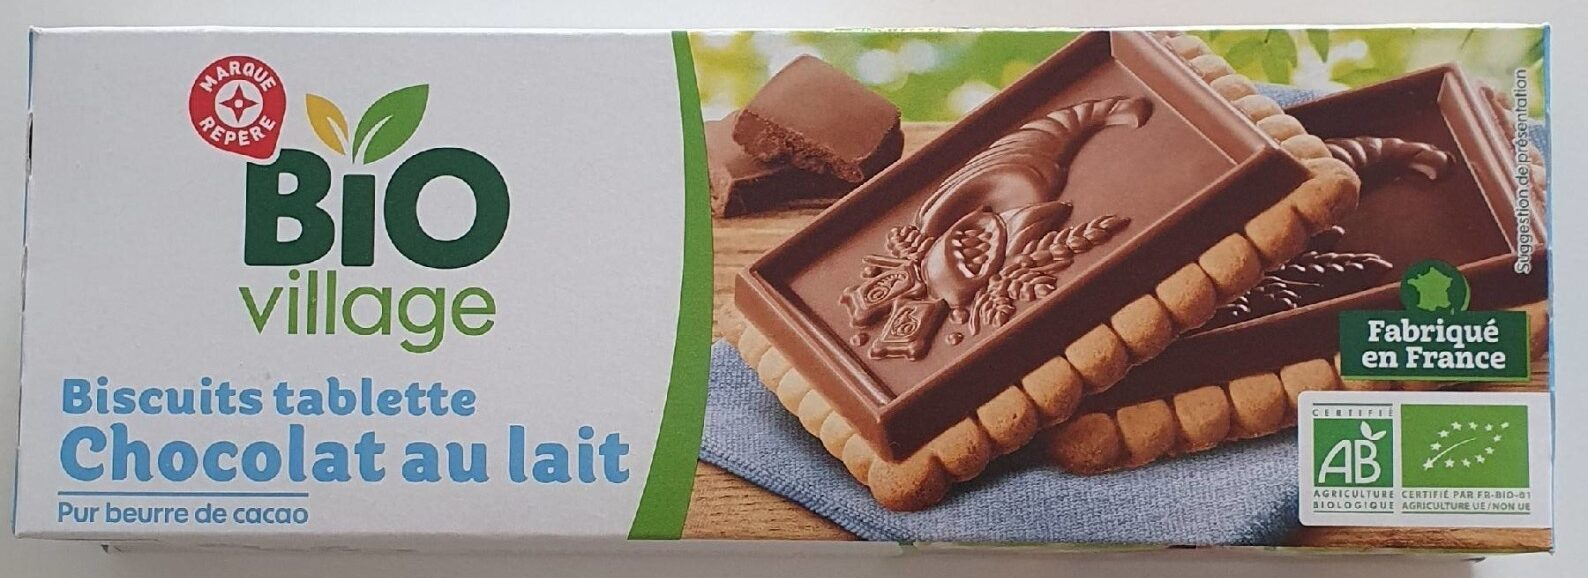 Biscuits tablette chocolat au lait - Produit - fr